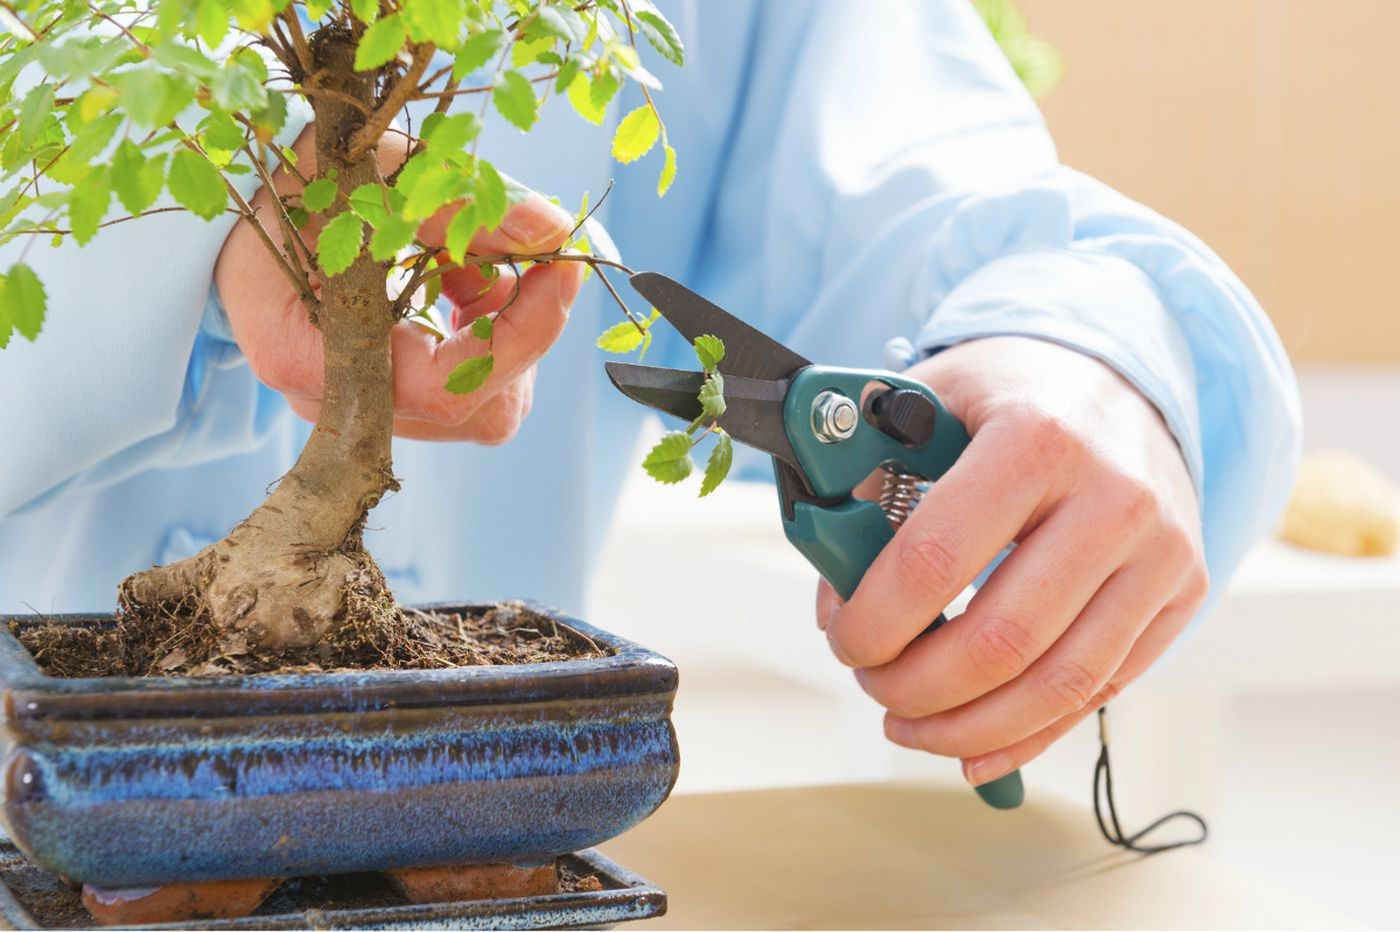 Can you dig it?: 6 ways to get hands-on with plants